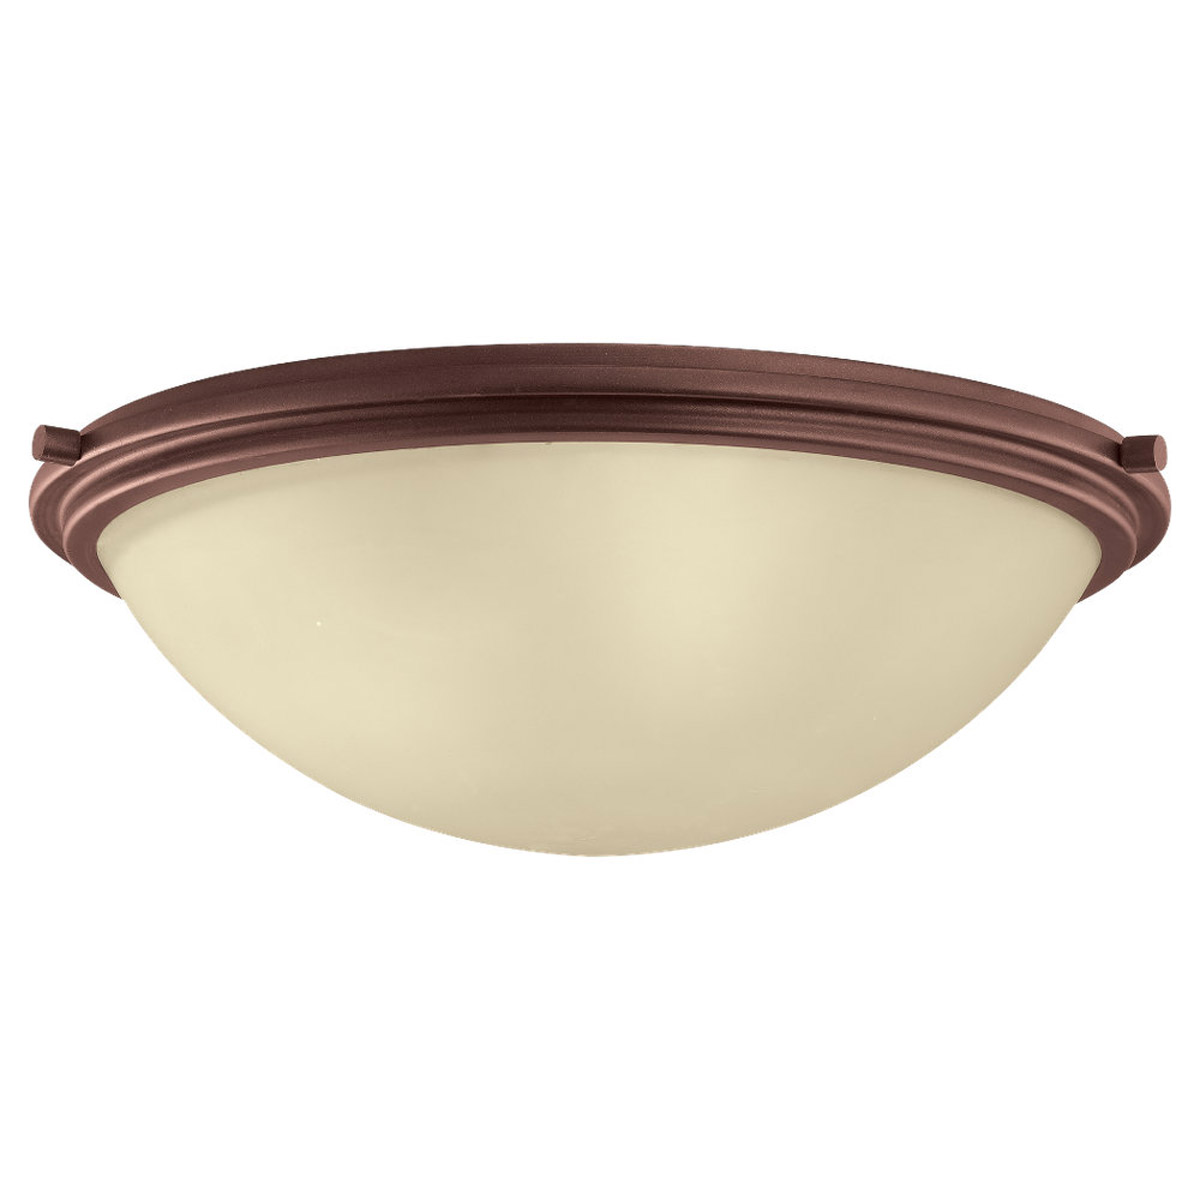 Sea Gull Lighting Winnetka 3 Light Flush Mount in Red Earth 75662-847 photo